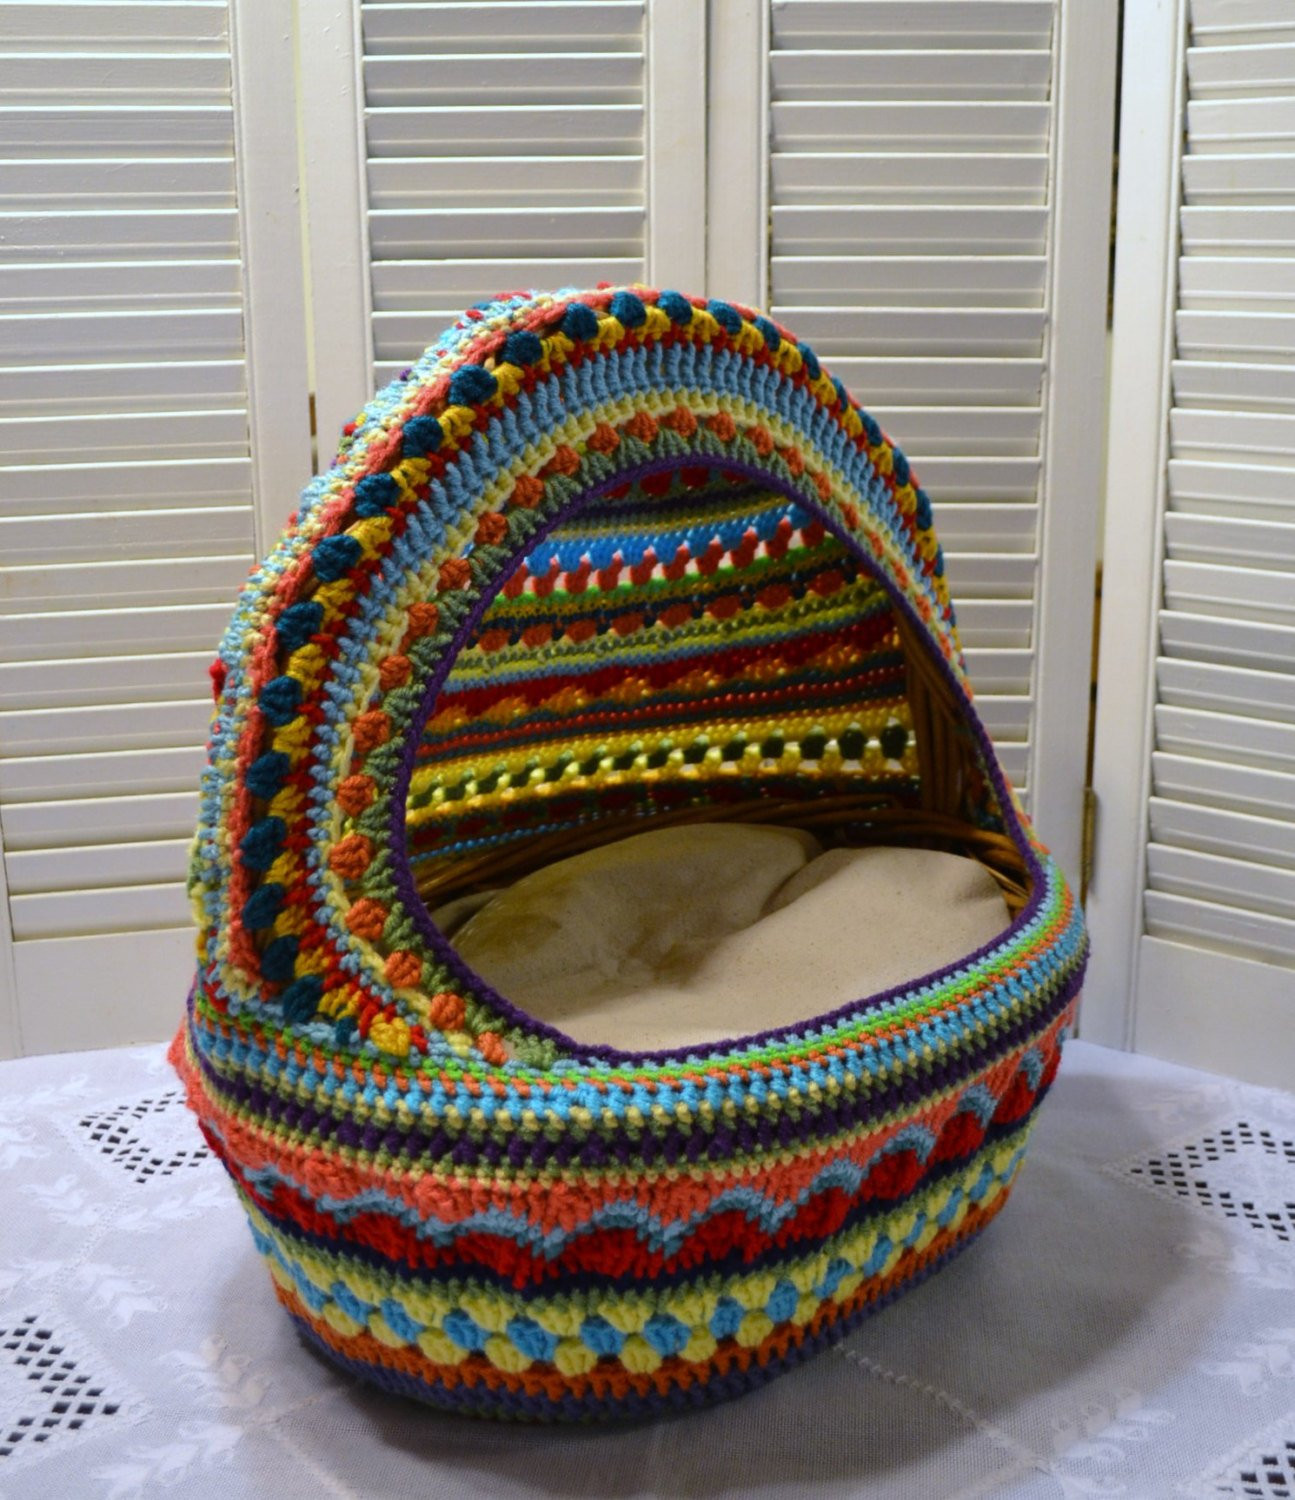 Crochet Dog Beds Unique Crochet Cat Cave Pet Bed Upcycled Wicker Basket Mulit Colored Of Charming 50 Ideas Crochet Dog Beds